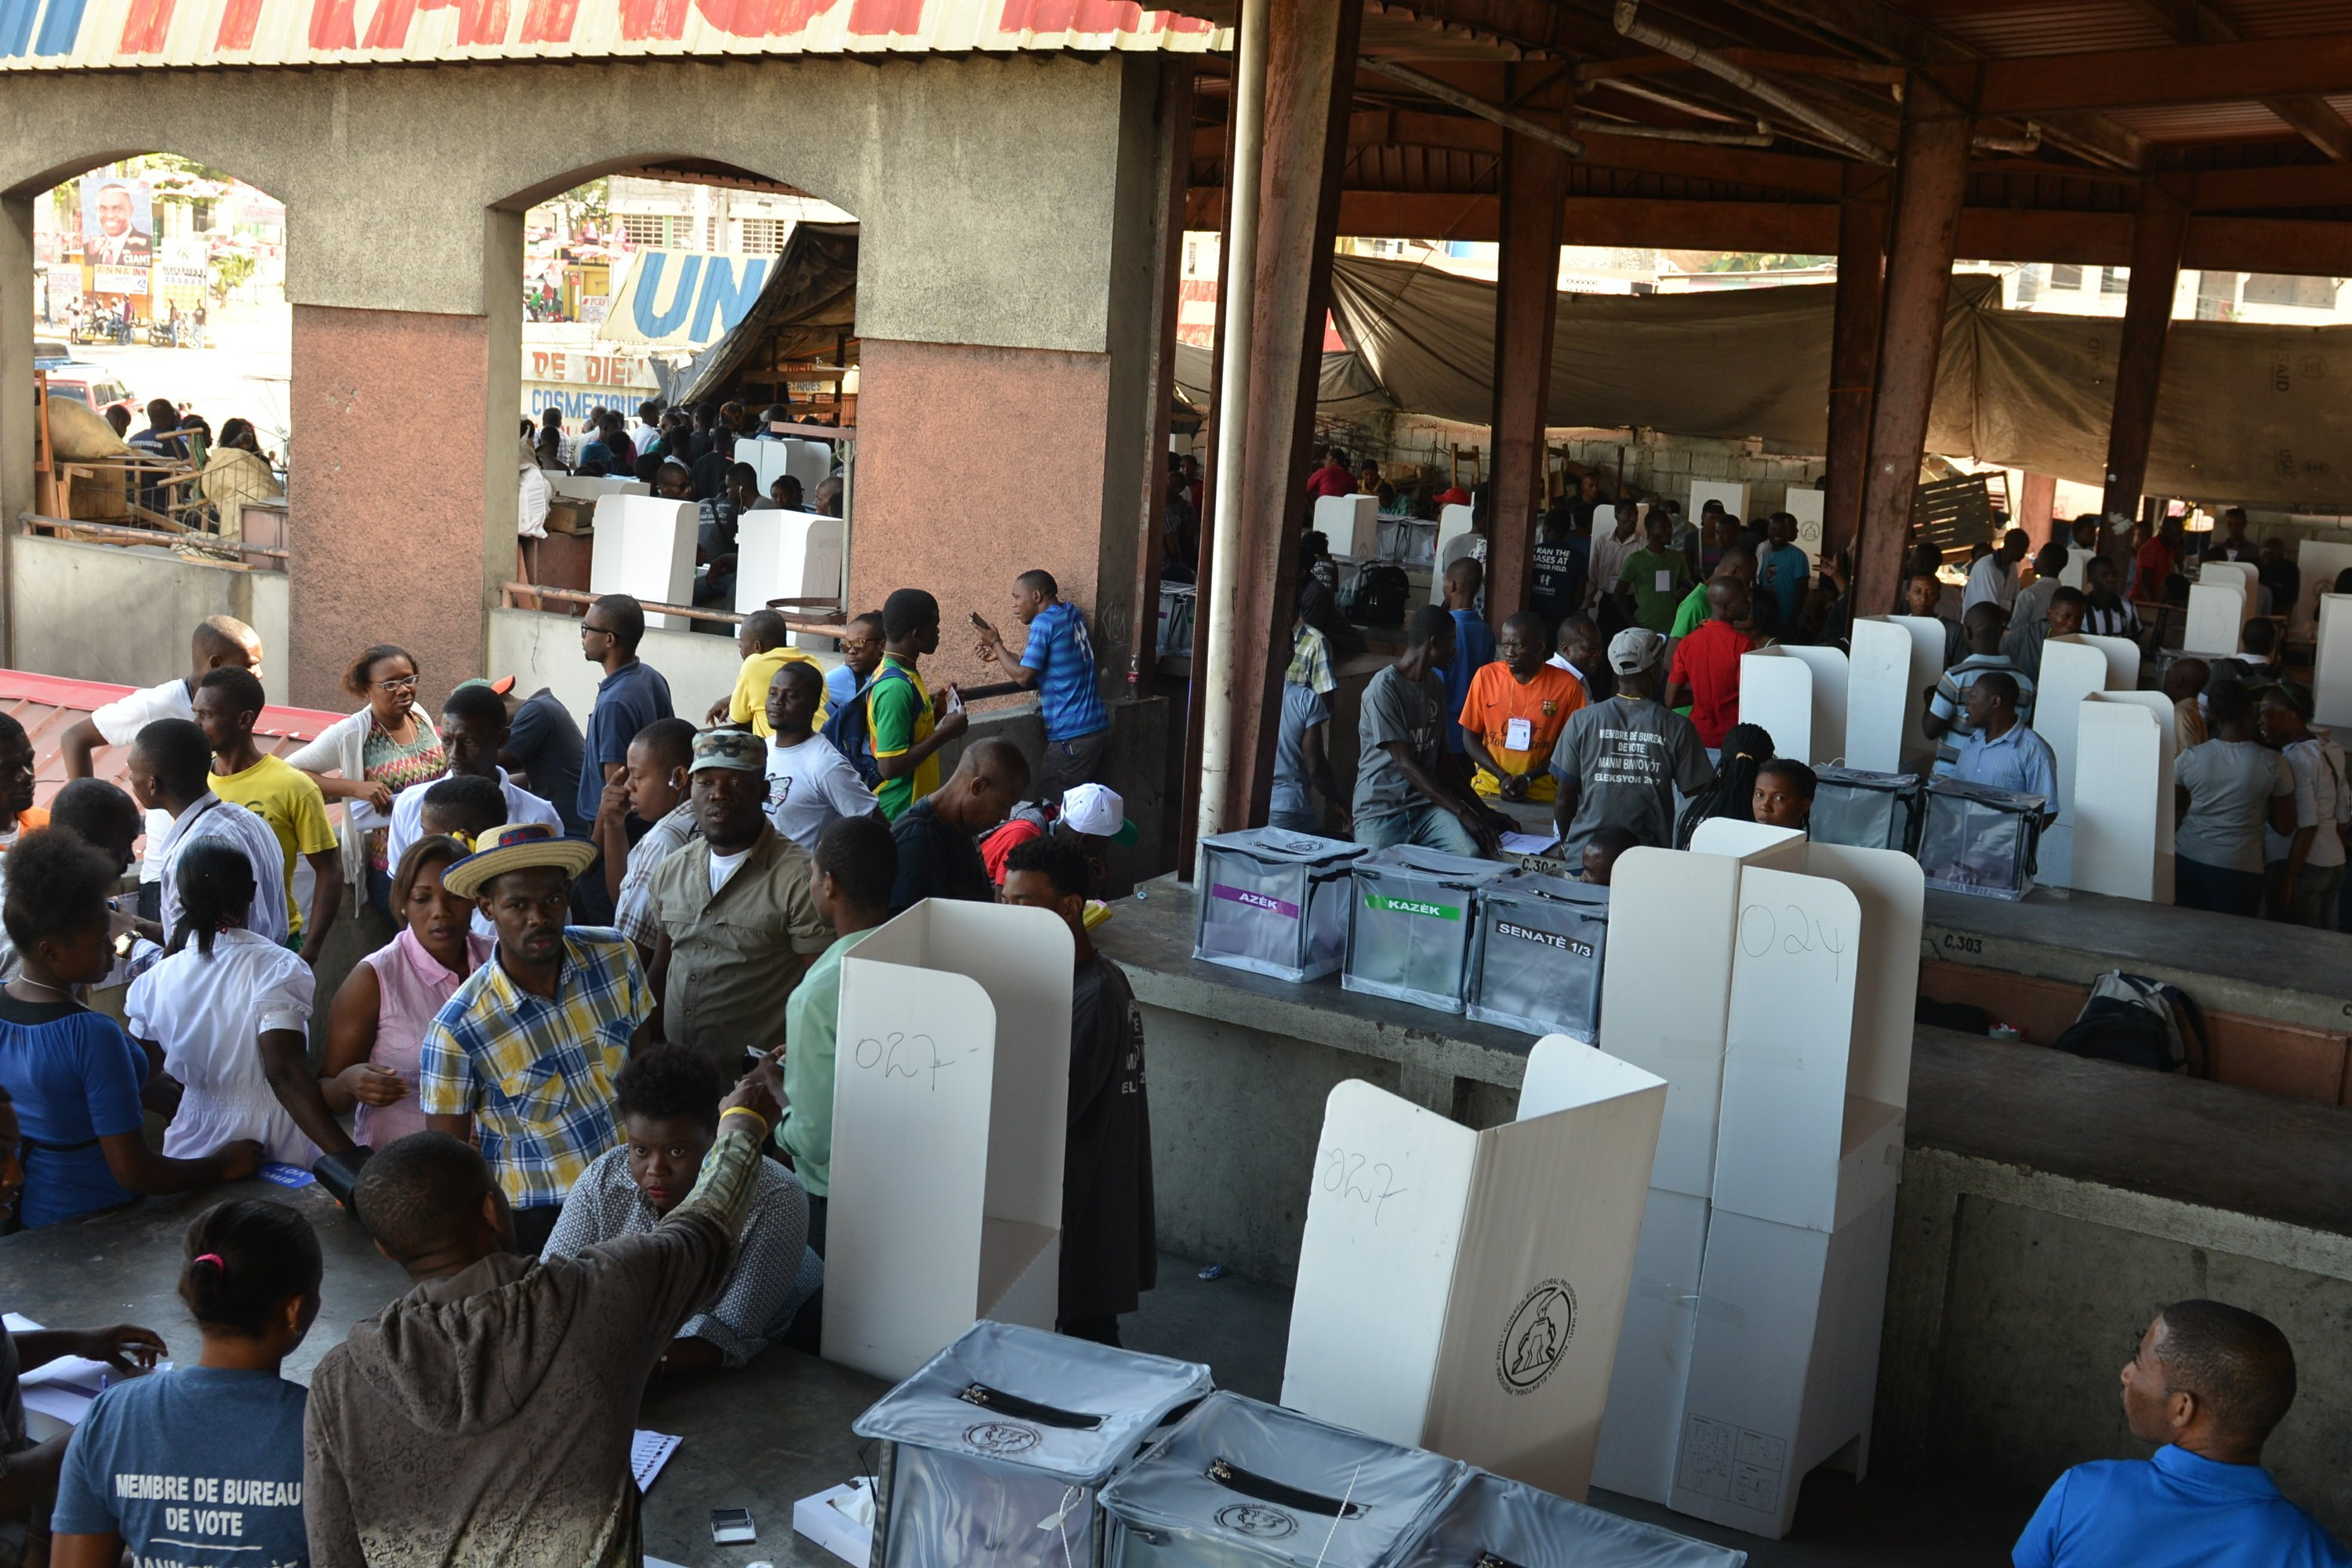 Bureau De Vote Nice Haiti Holds Final Round Of Election Cycle Started In 2015